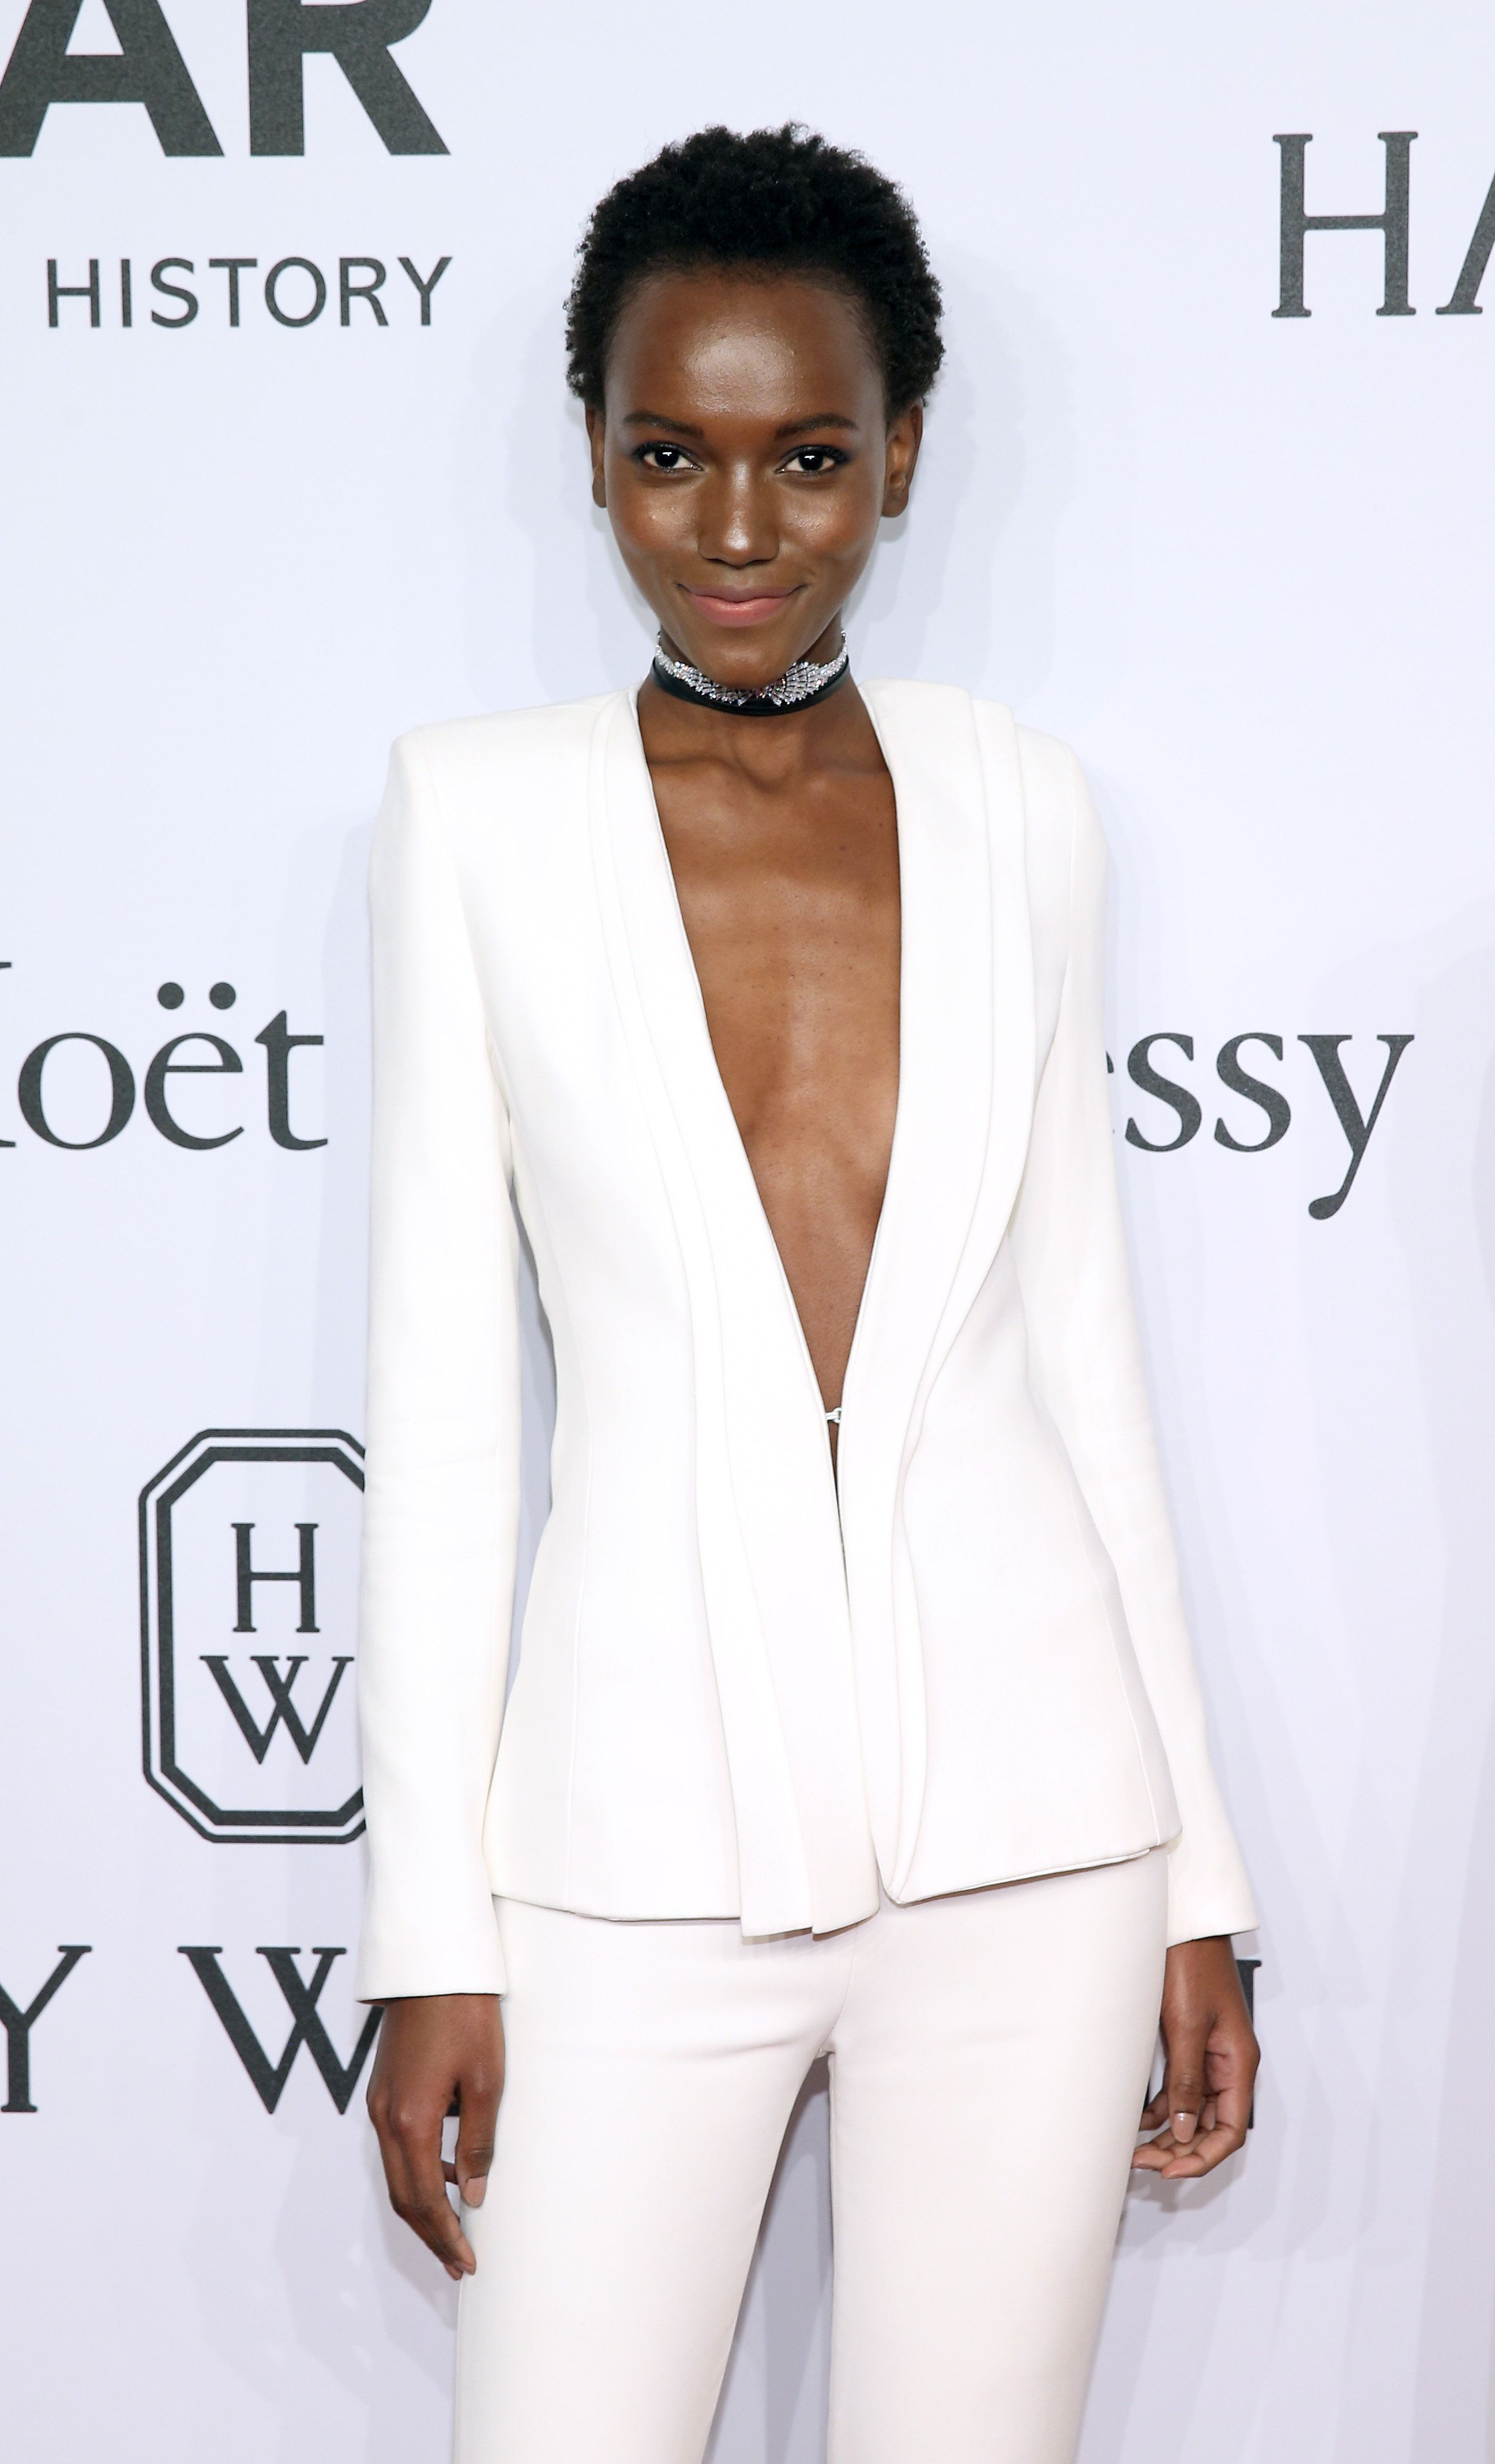 NEW YORK, NY - FEBRUARY 10:  Model Herieth Paul attends the 2016 amfAR New York Gala at Cipriani Wall Street on February 10, 2016 in New York City.  (Photo by Neilson Barnard/WireImage)